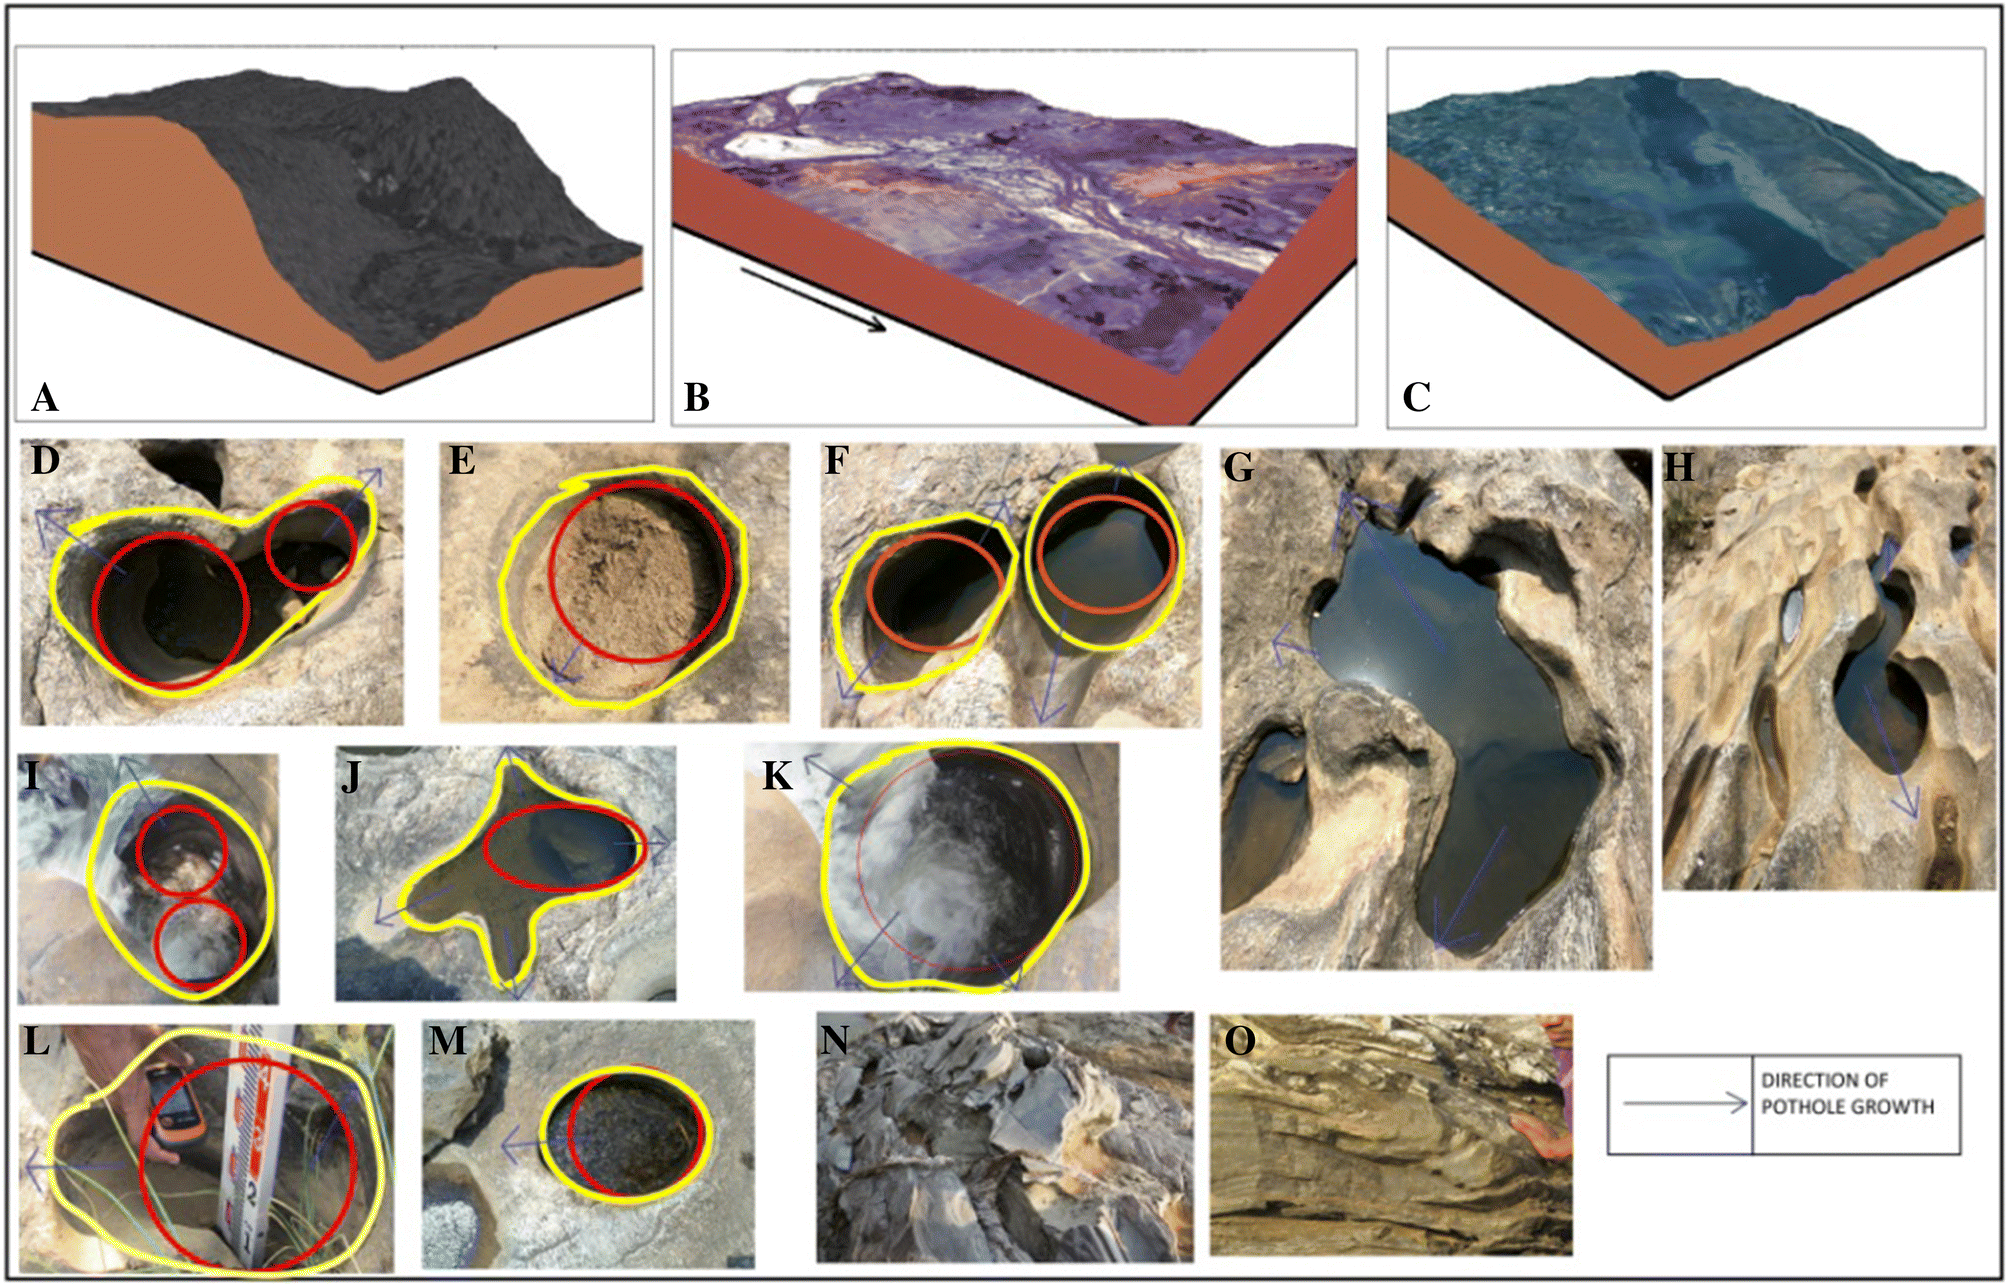 Dynamic of channel potholes on Precambrian geological sites